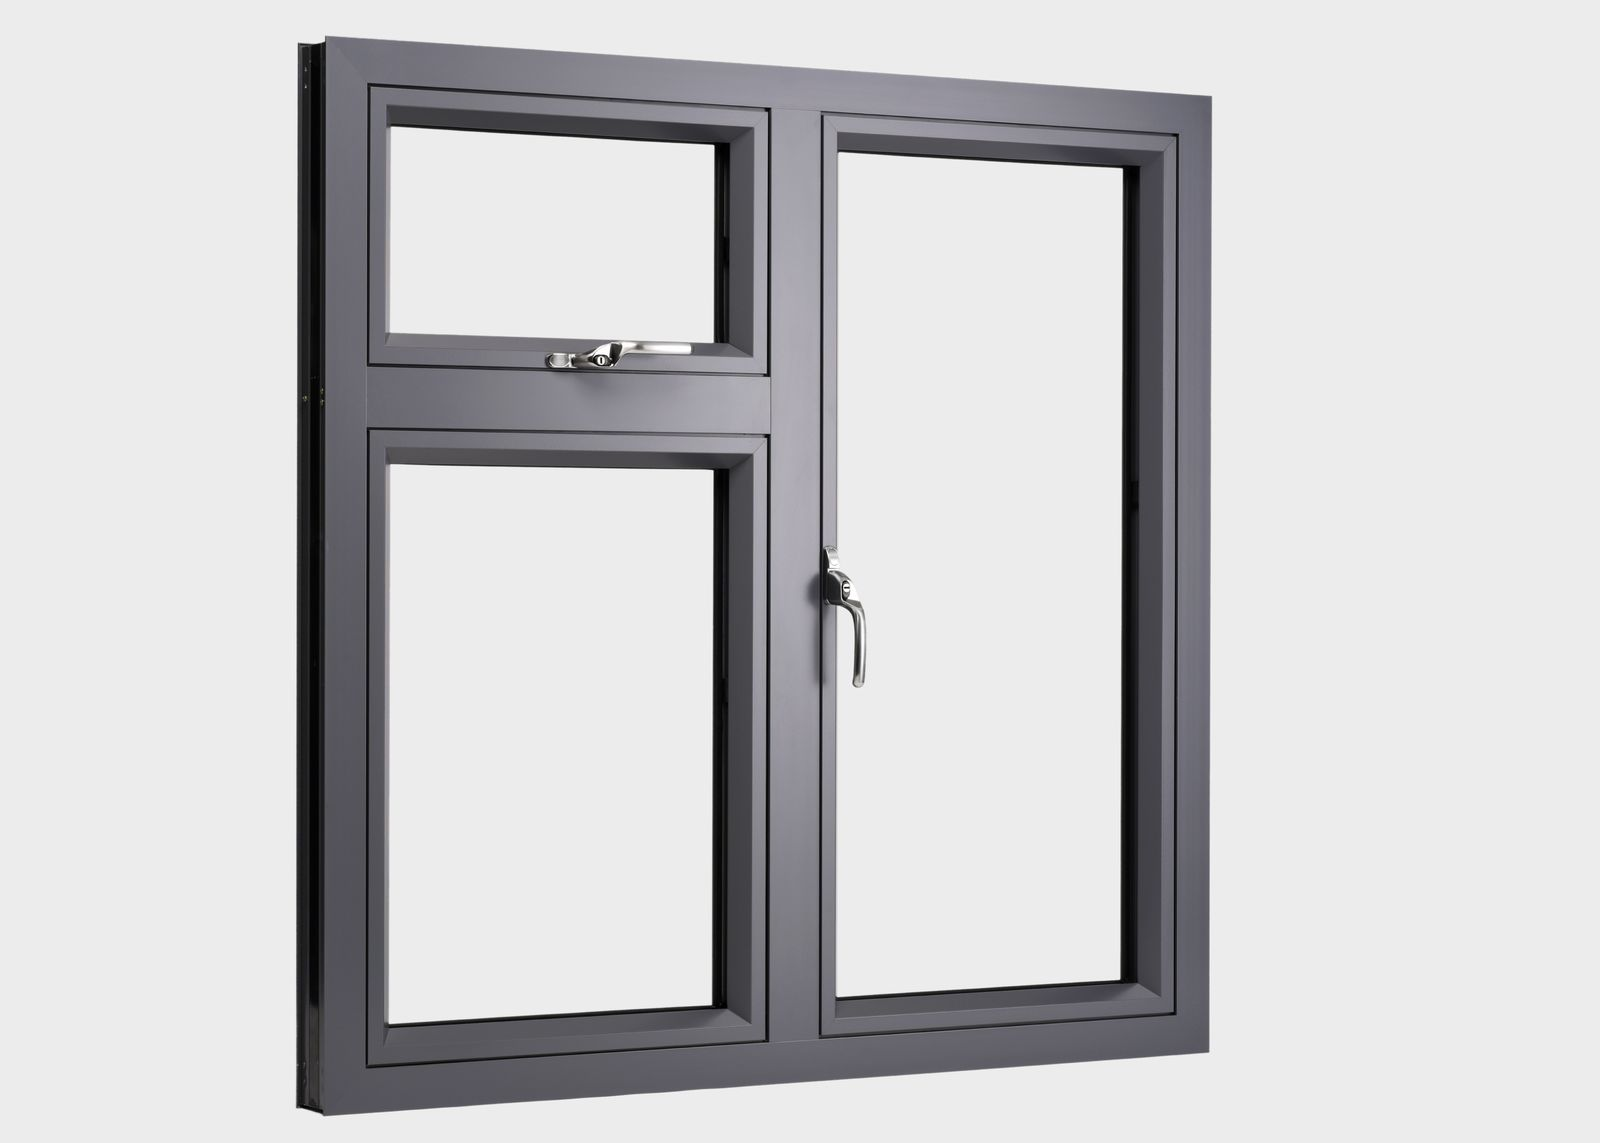 ... Will Have What Is Known As A U0027dummy Sashu0027 To Match The Appearance Of A  Casement Window That Does Open. This Is What A Casement Window Looks Like: